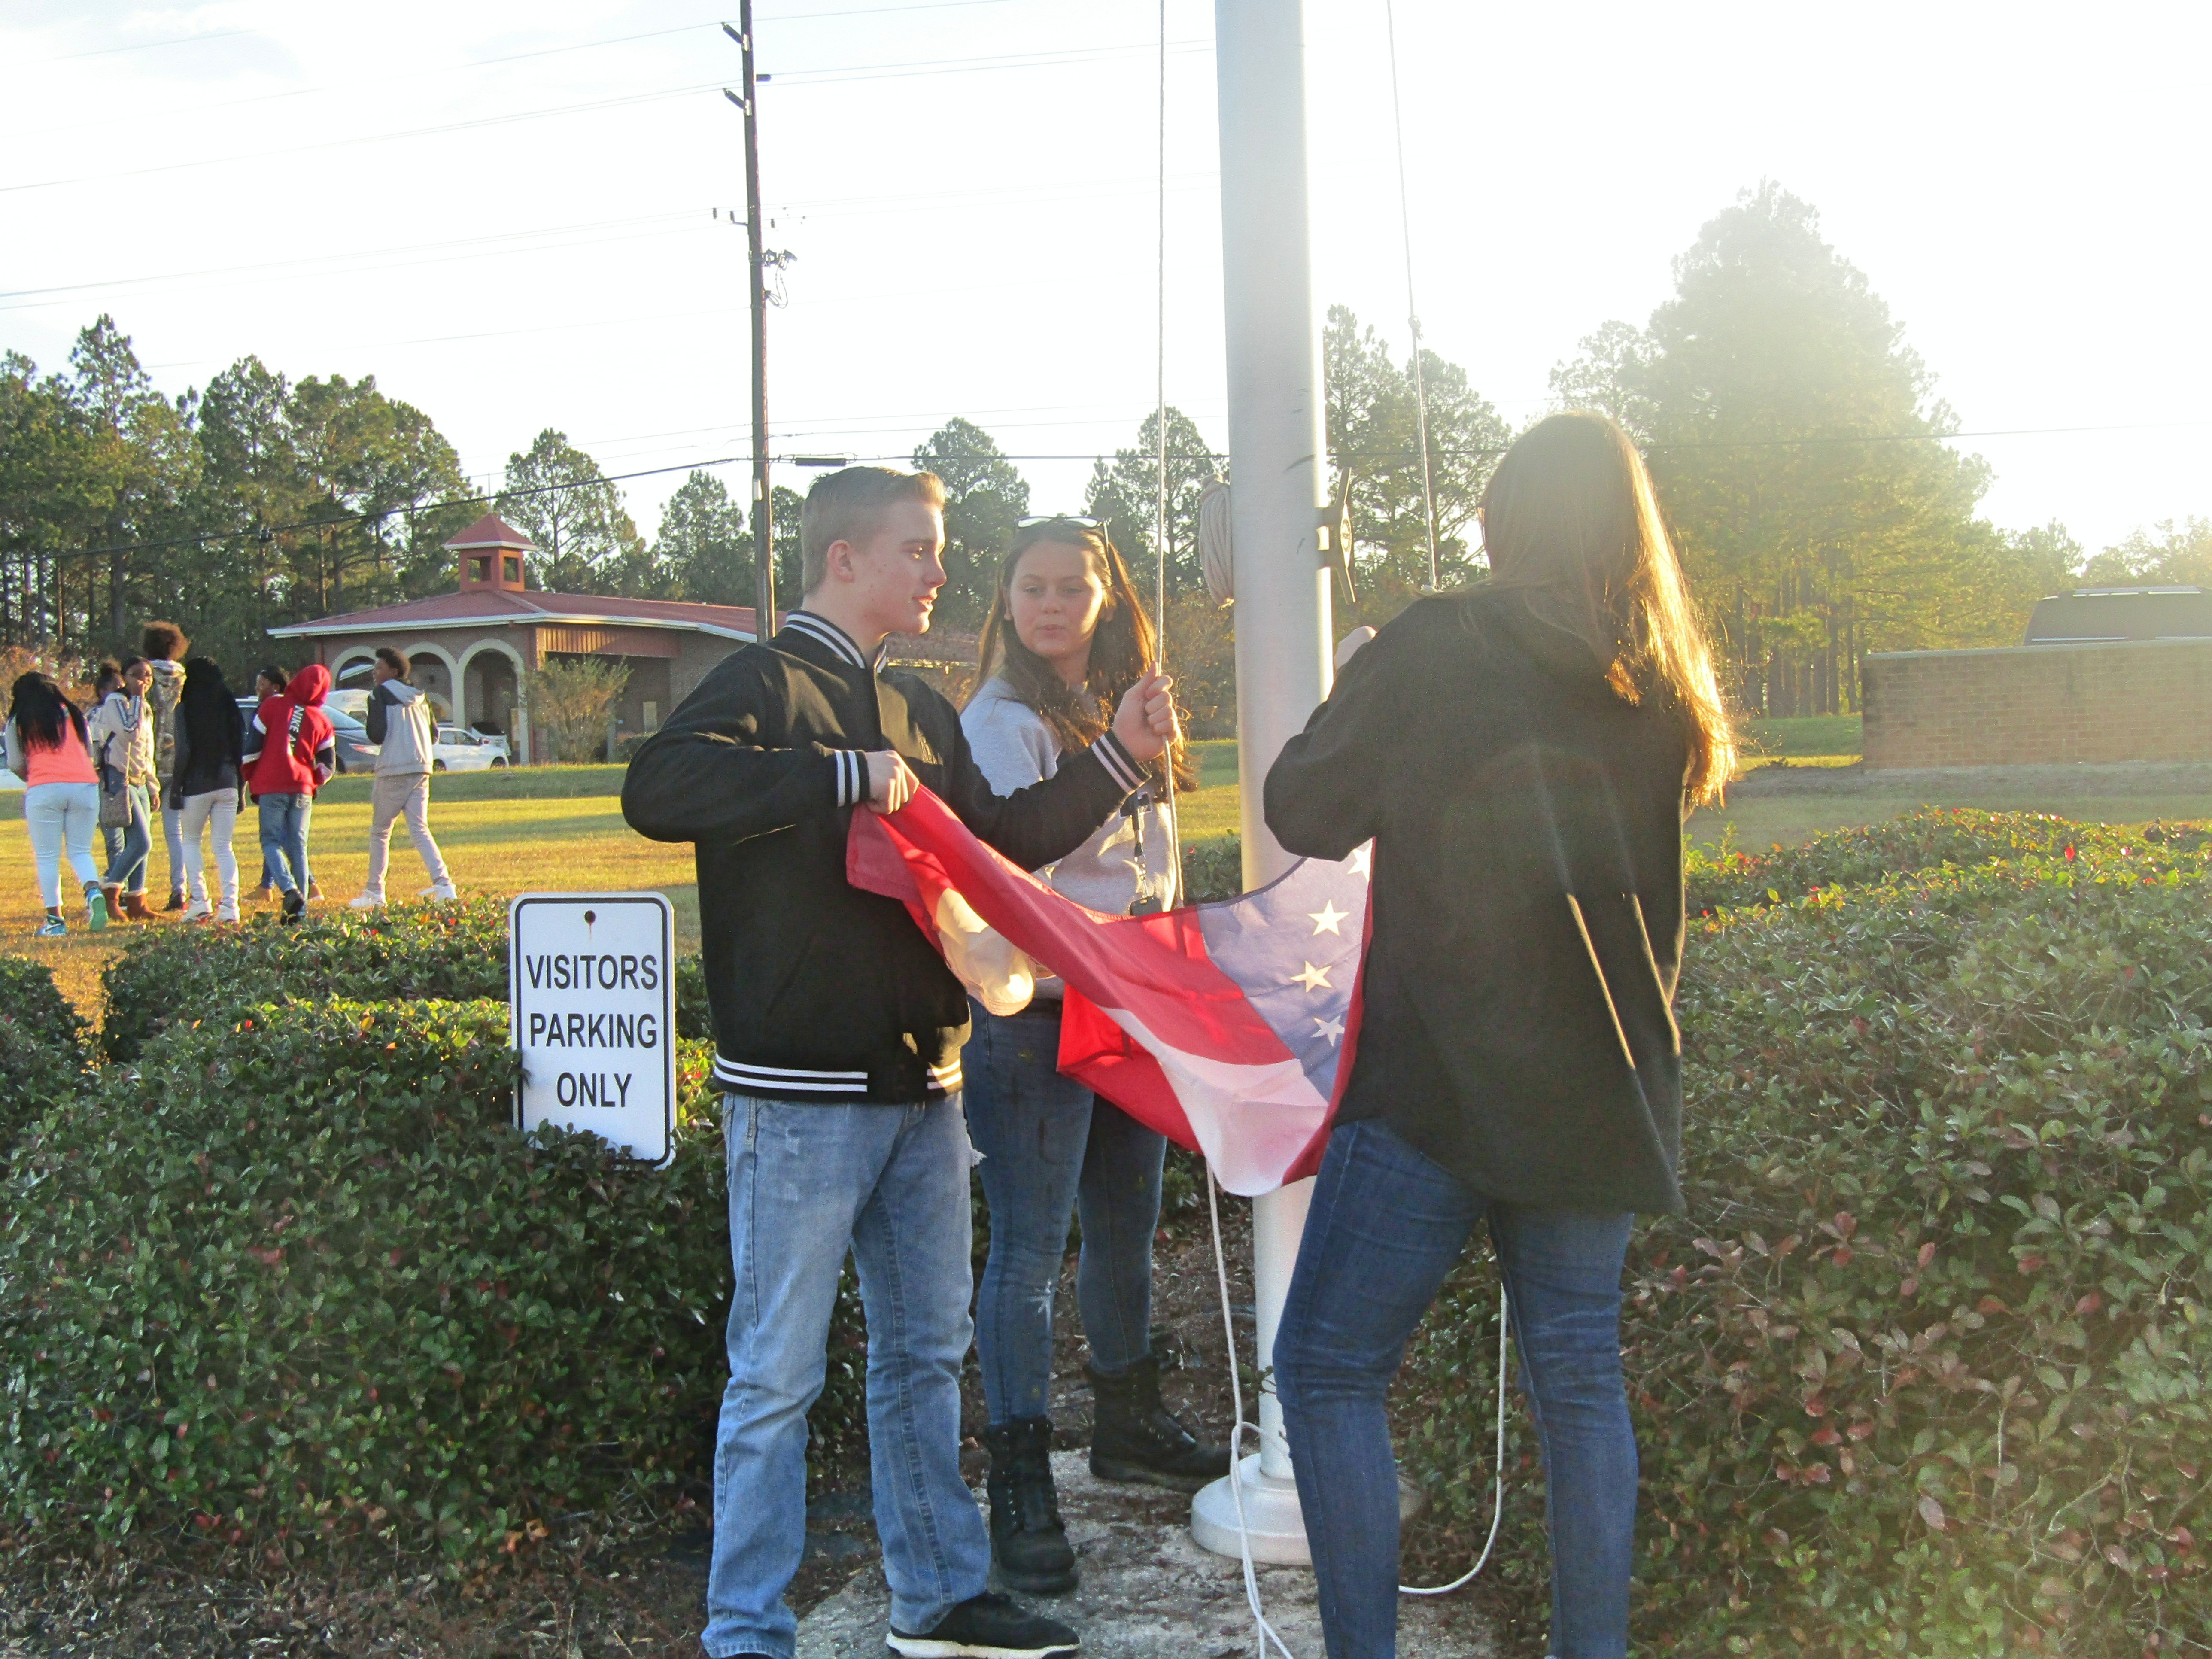 FCA - Prayer at the Pole - December Meeting - The flag goes up as students gather to pray.